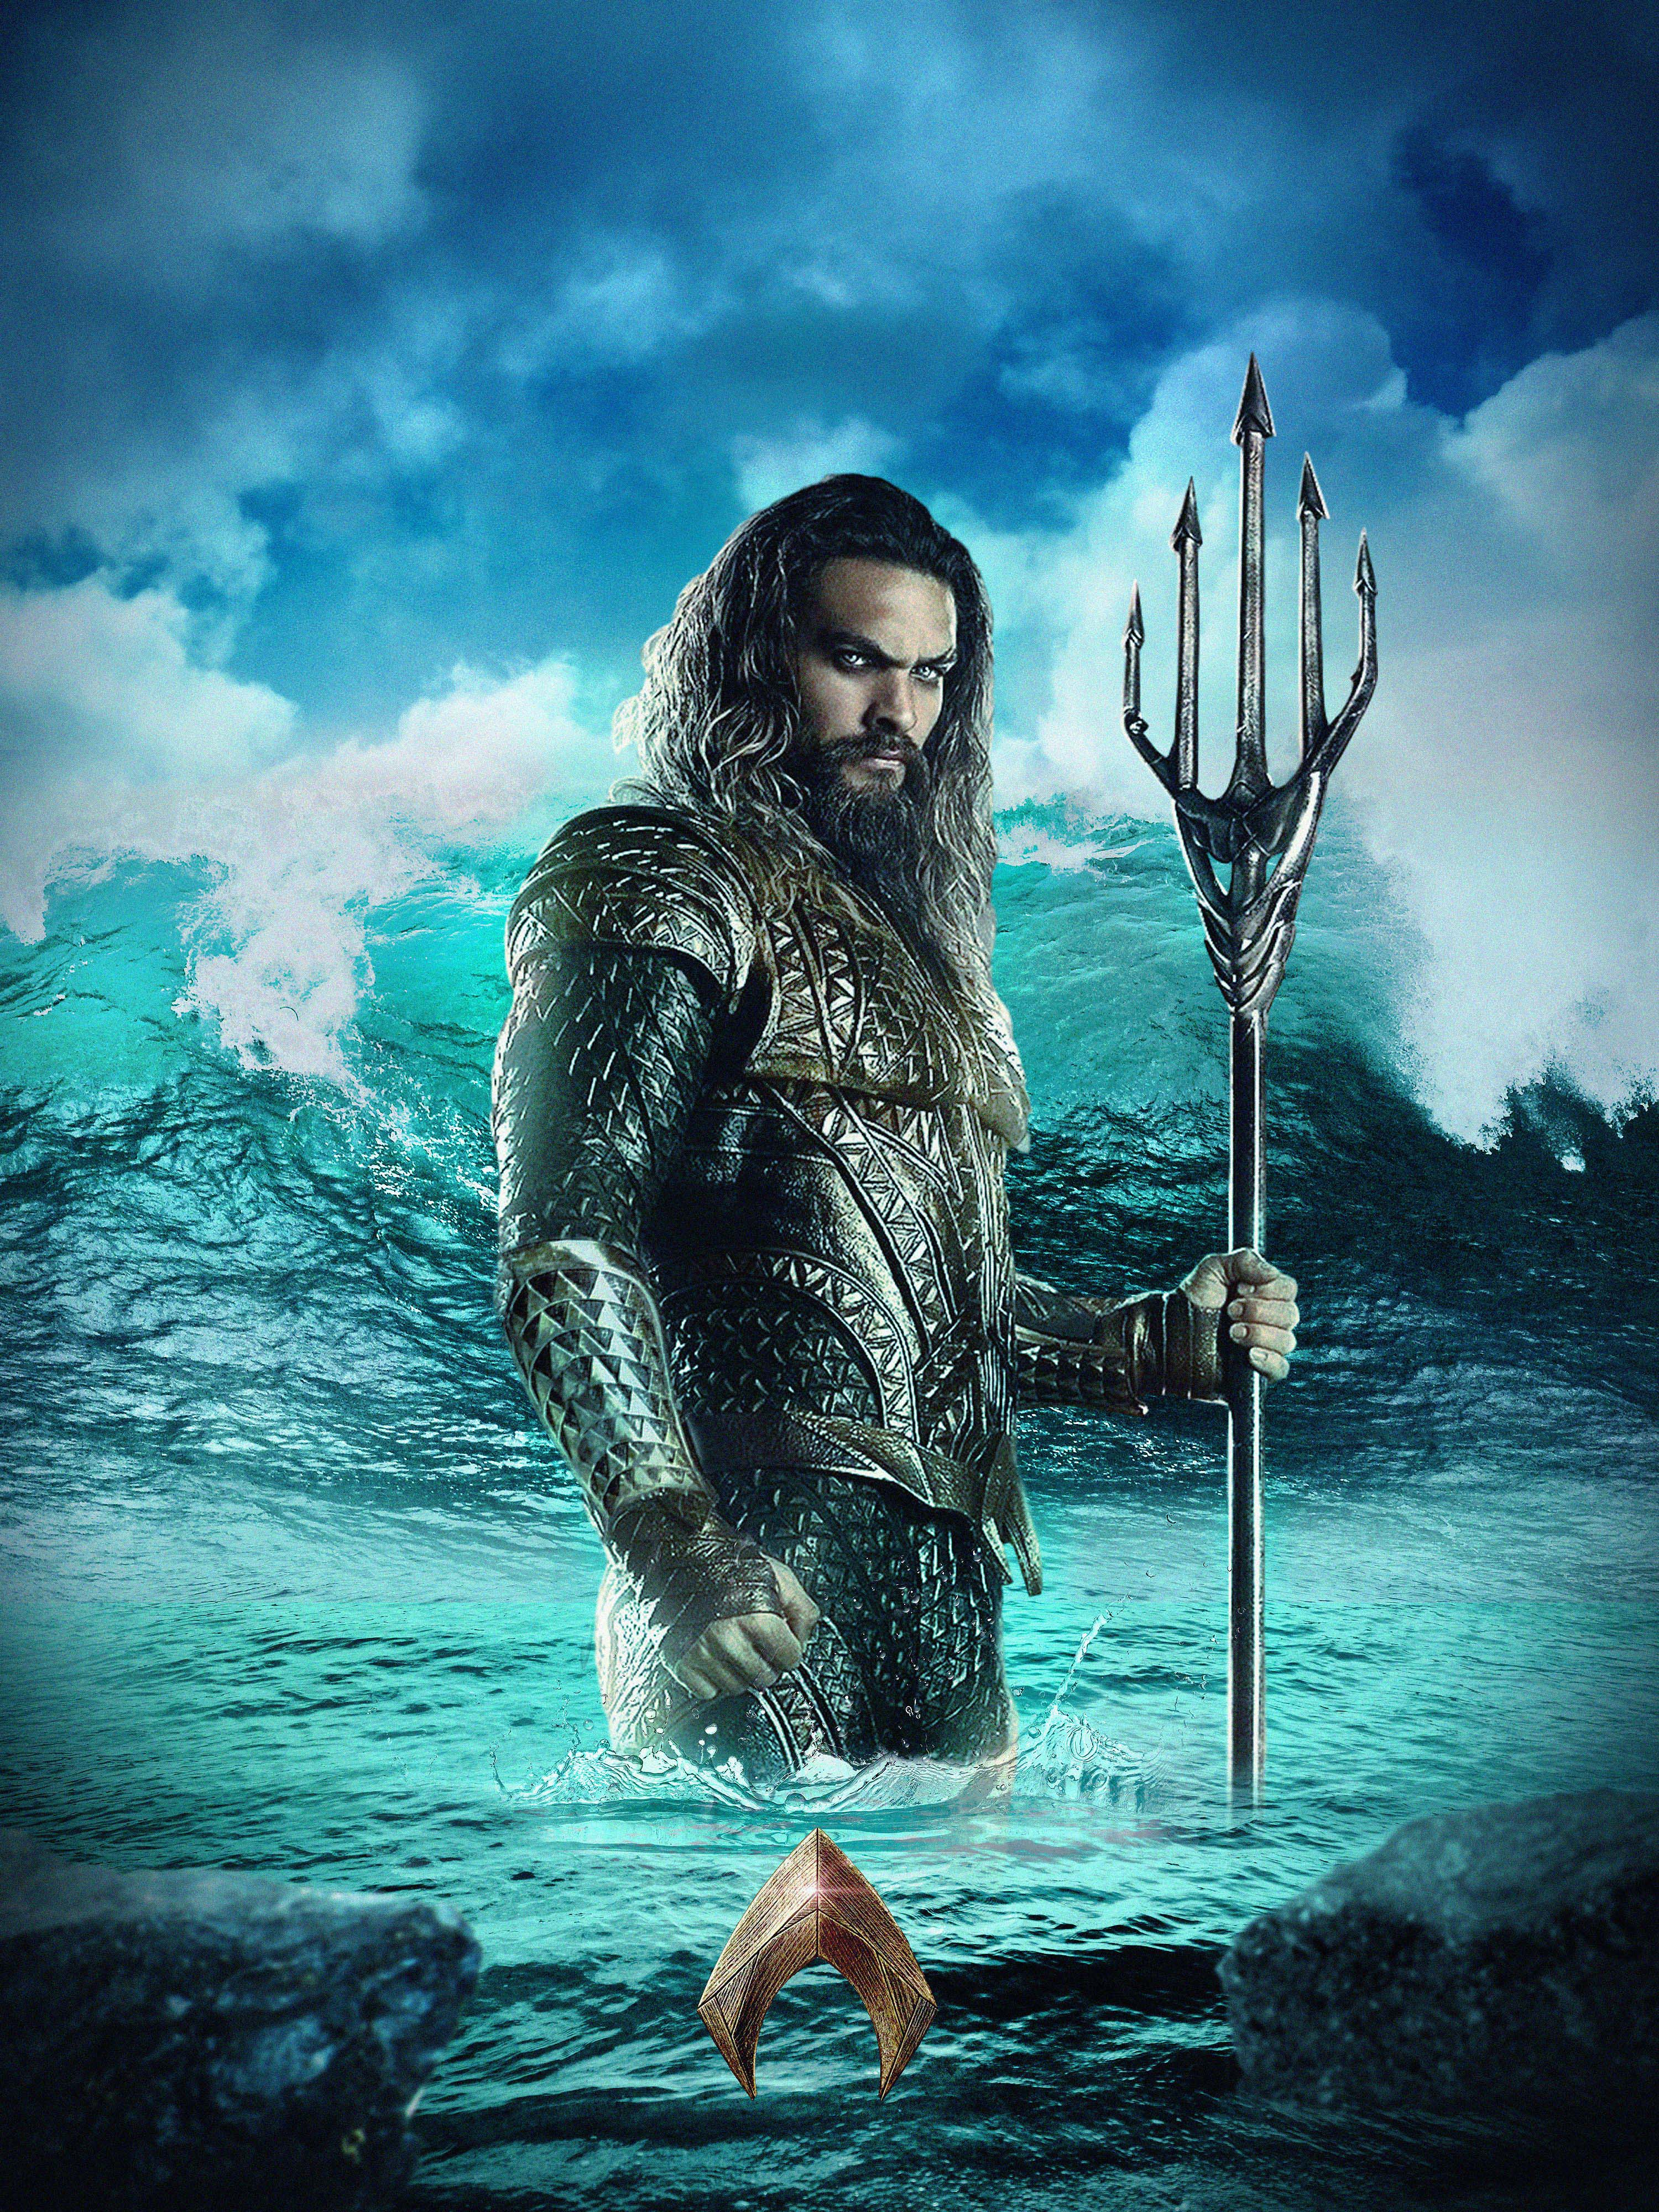 aqua man sea dc comics movie hd pc mobile desktop wallpaper